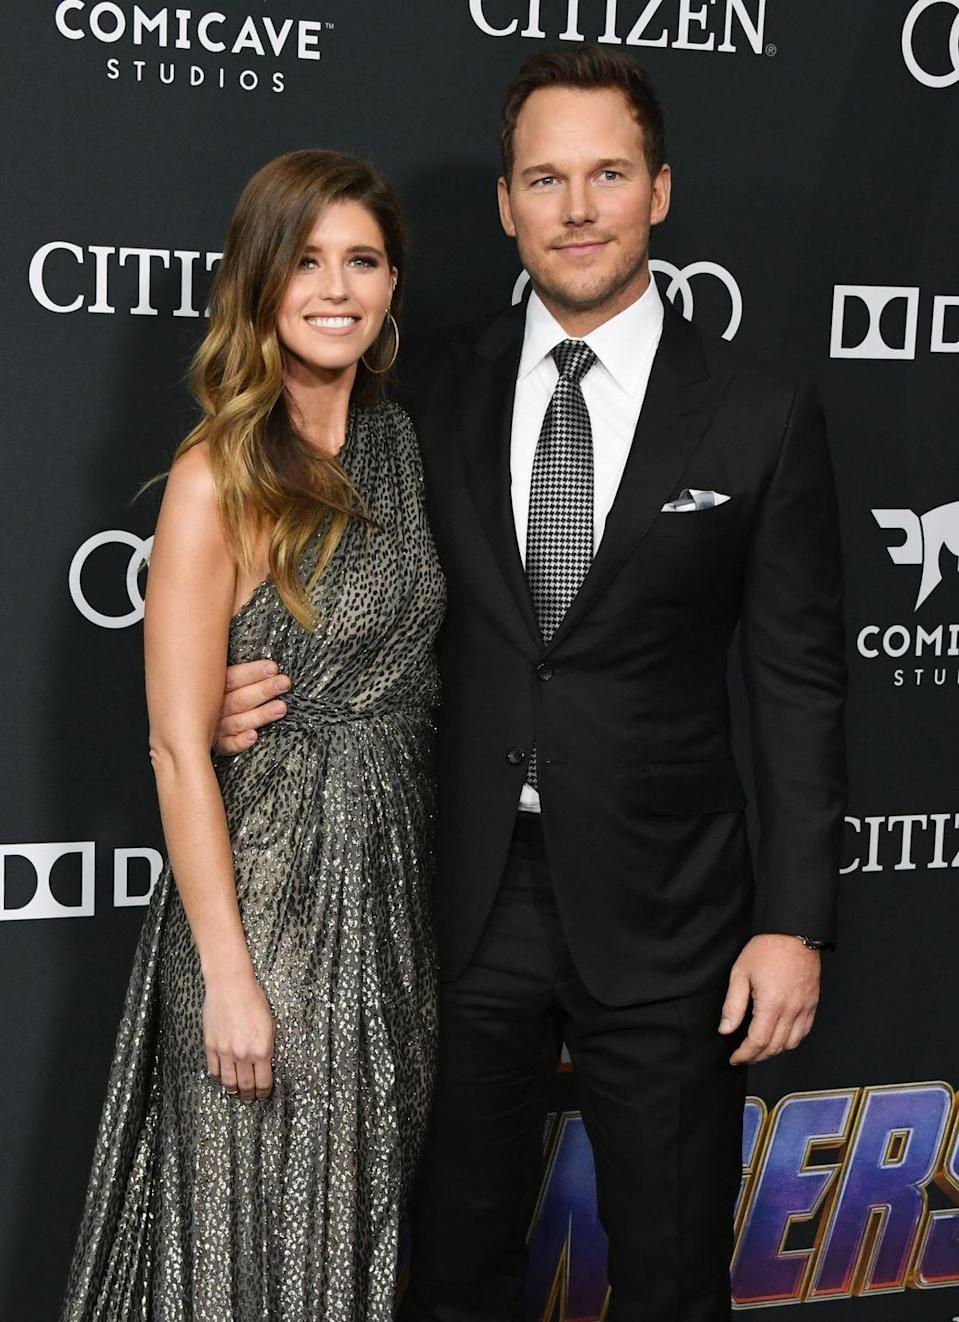 <p><strong>Age gap: </strong>10 years </p><p>Chris Pratt and Katherine Schwarzenegger announced their engagement in January 2019, after keeping a low profile at the beginning of their relationship. The couple were married in June in a private ceremony. Pratt divorced actress Anna Faris in 2018, but the two still coparent their son Jack. </p>